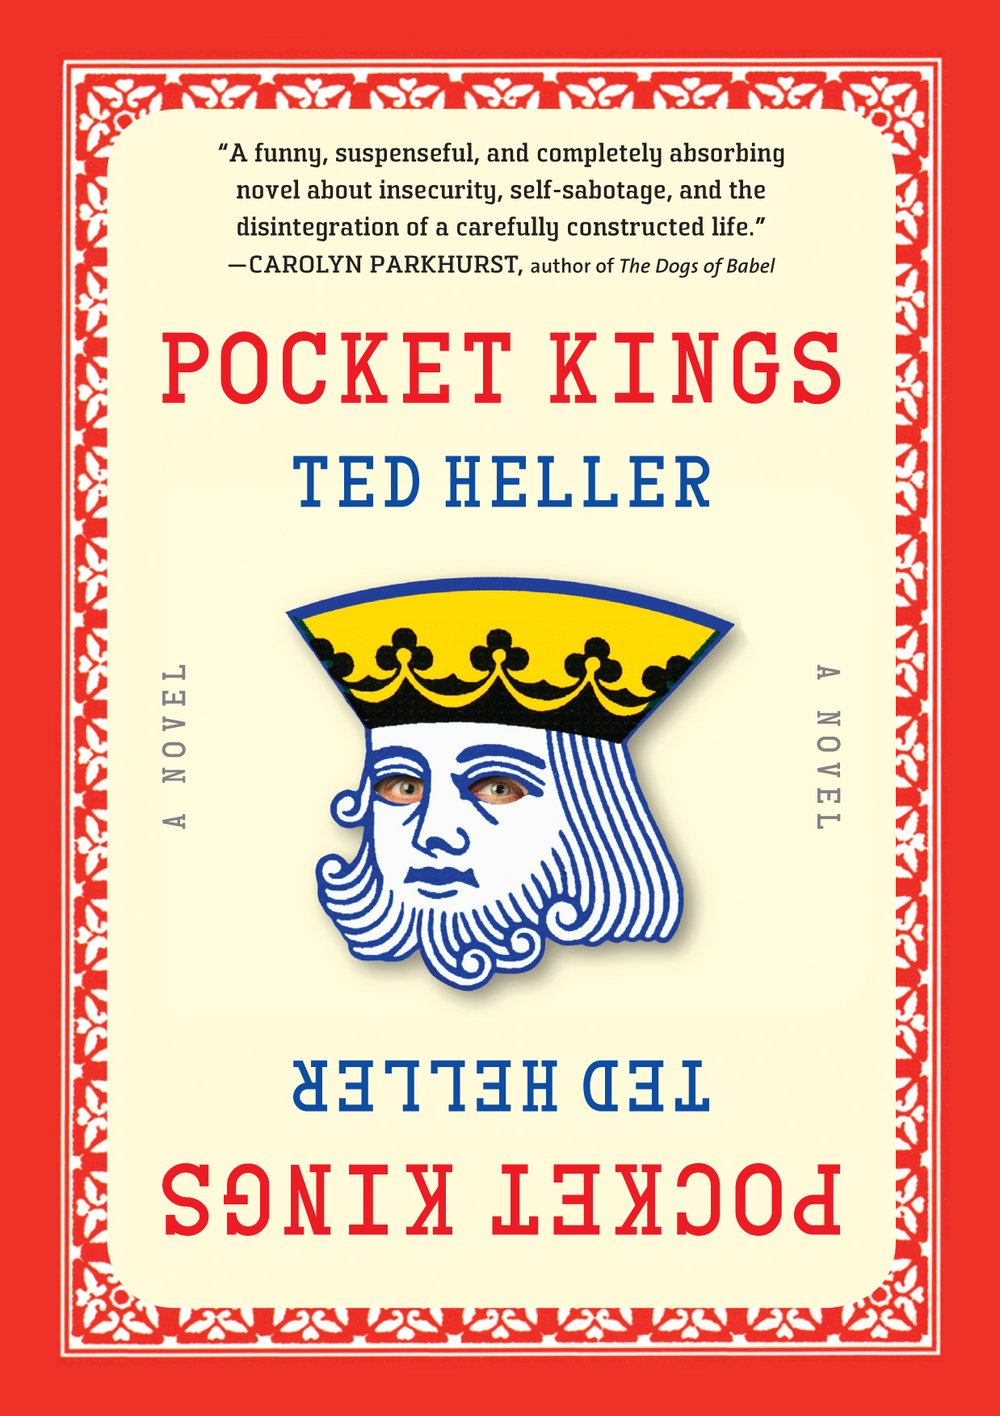 pocketkings_tedheller_cover.jpg